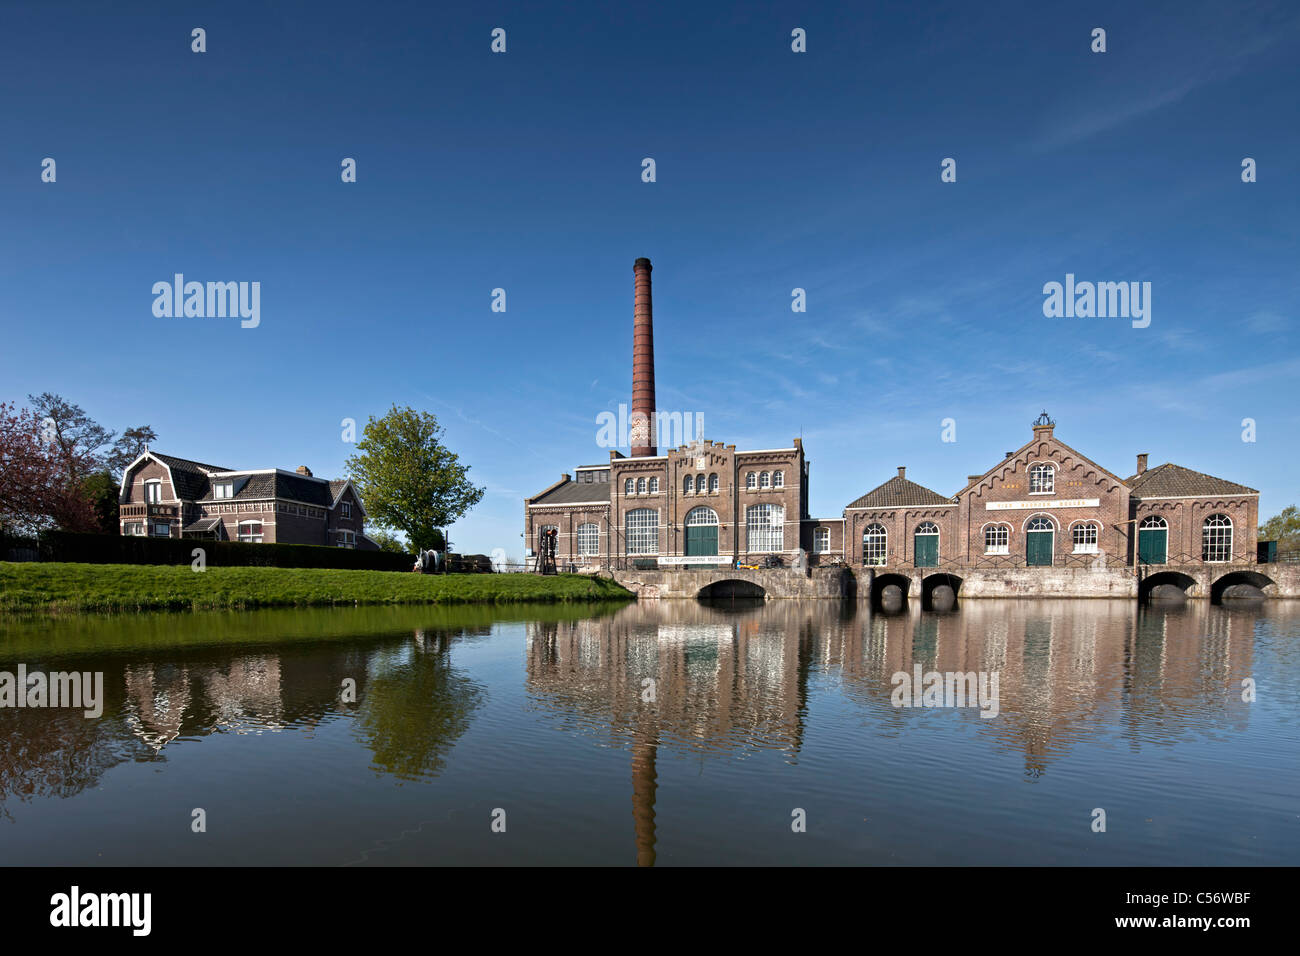 The Netherlands, Medemblik, Former pumping station pumping water from polder into lake called IJsselmeer. Now museum. - Stock Image